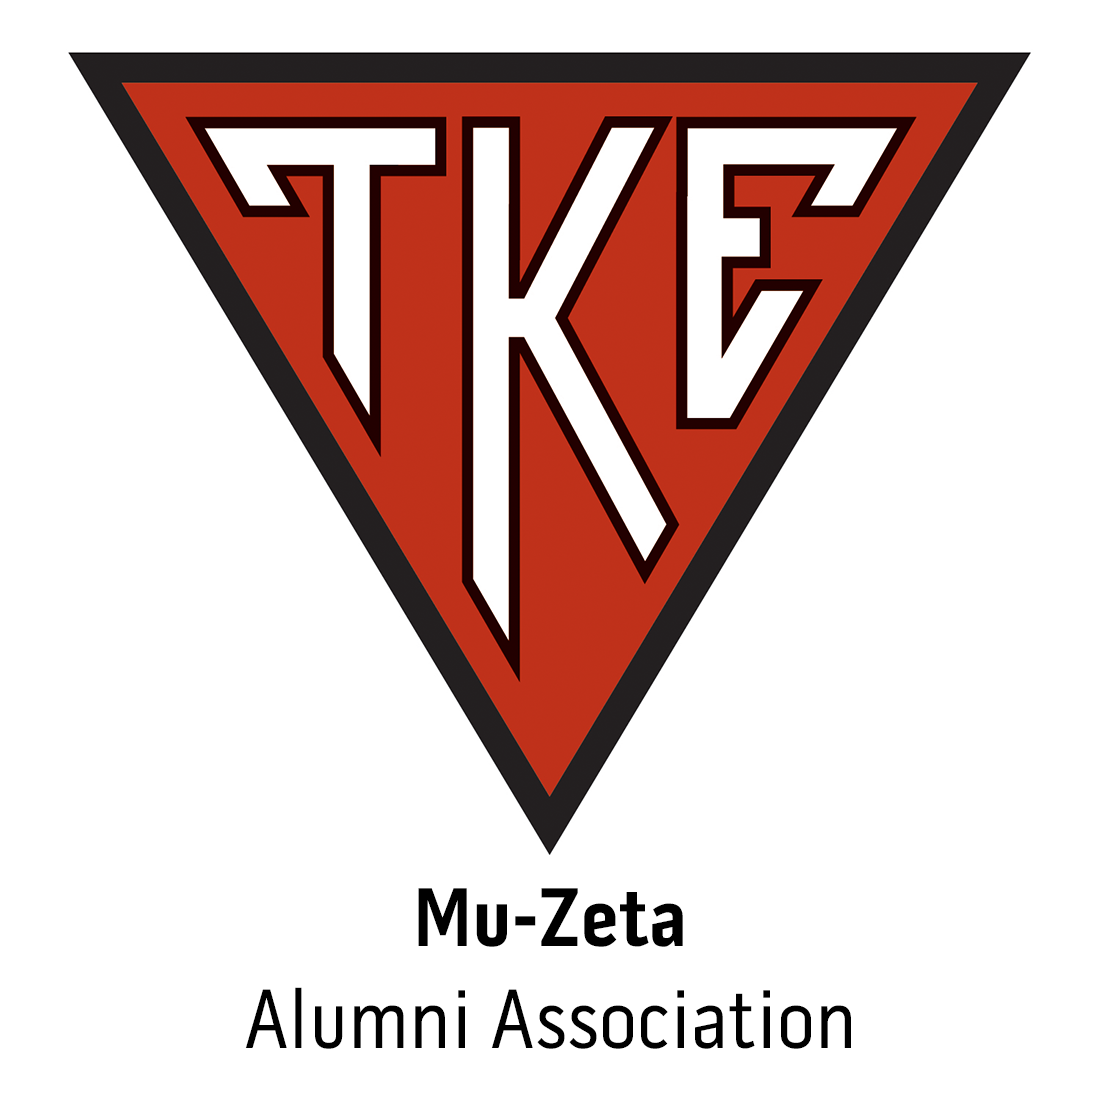 Mu-Zeta Alumni Association Alumni at Nicholls State University